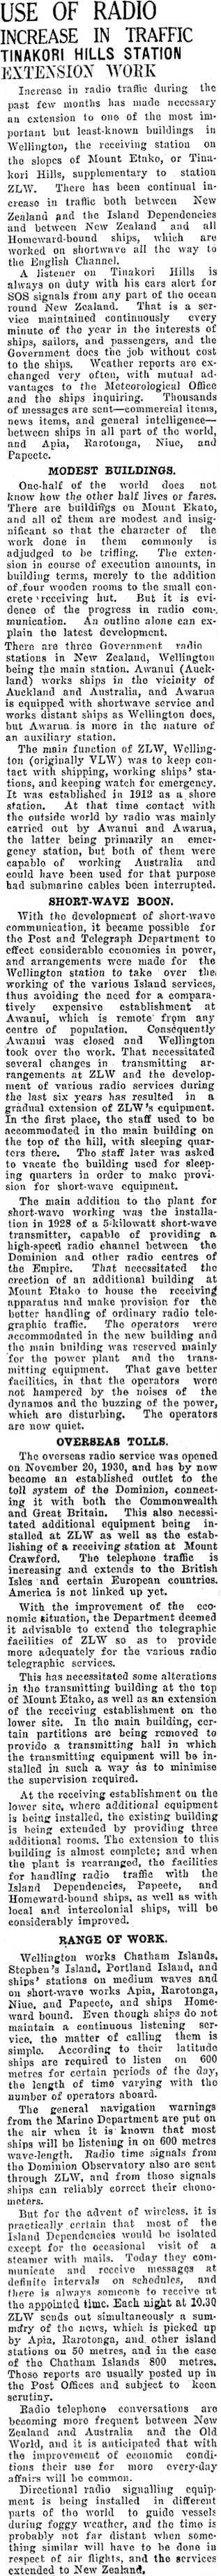 Extension of receiving station at Wellington Radio ZLW